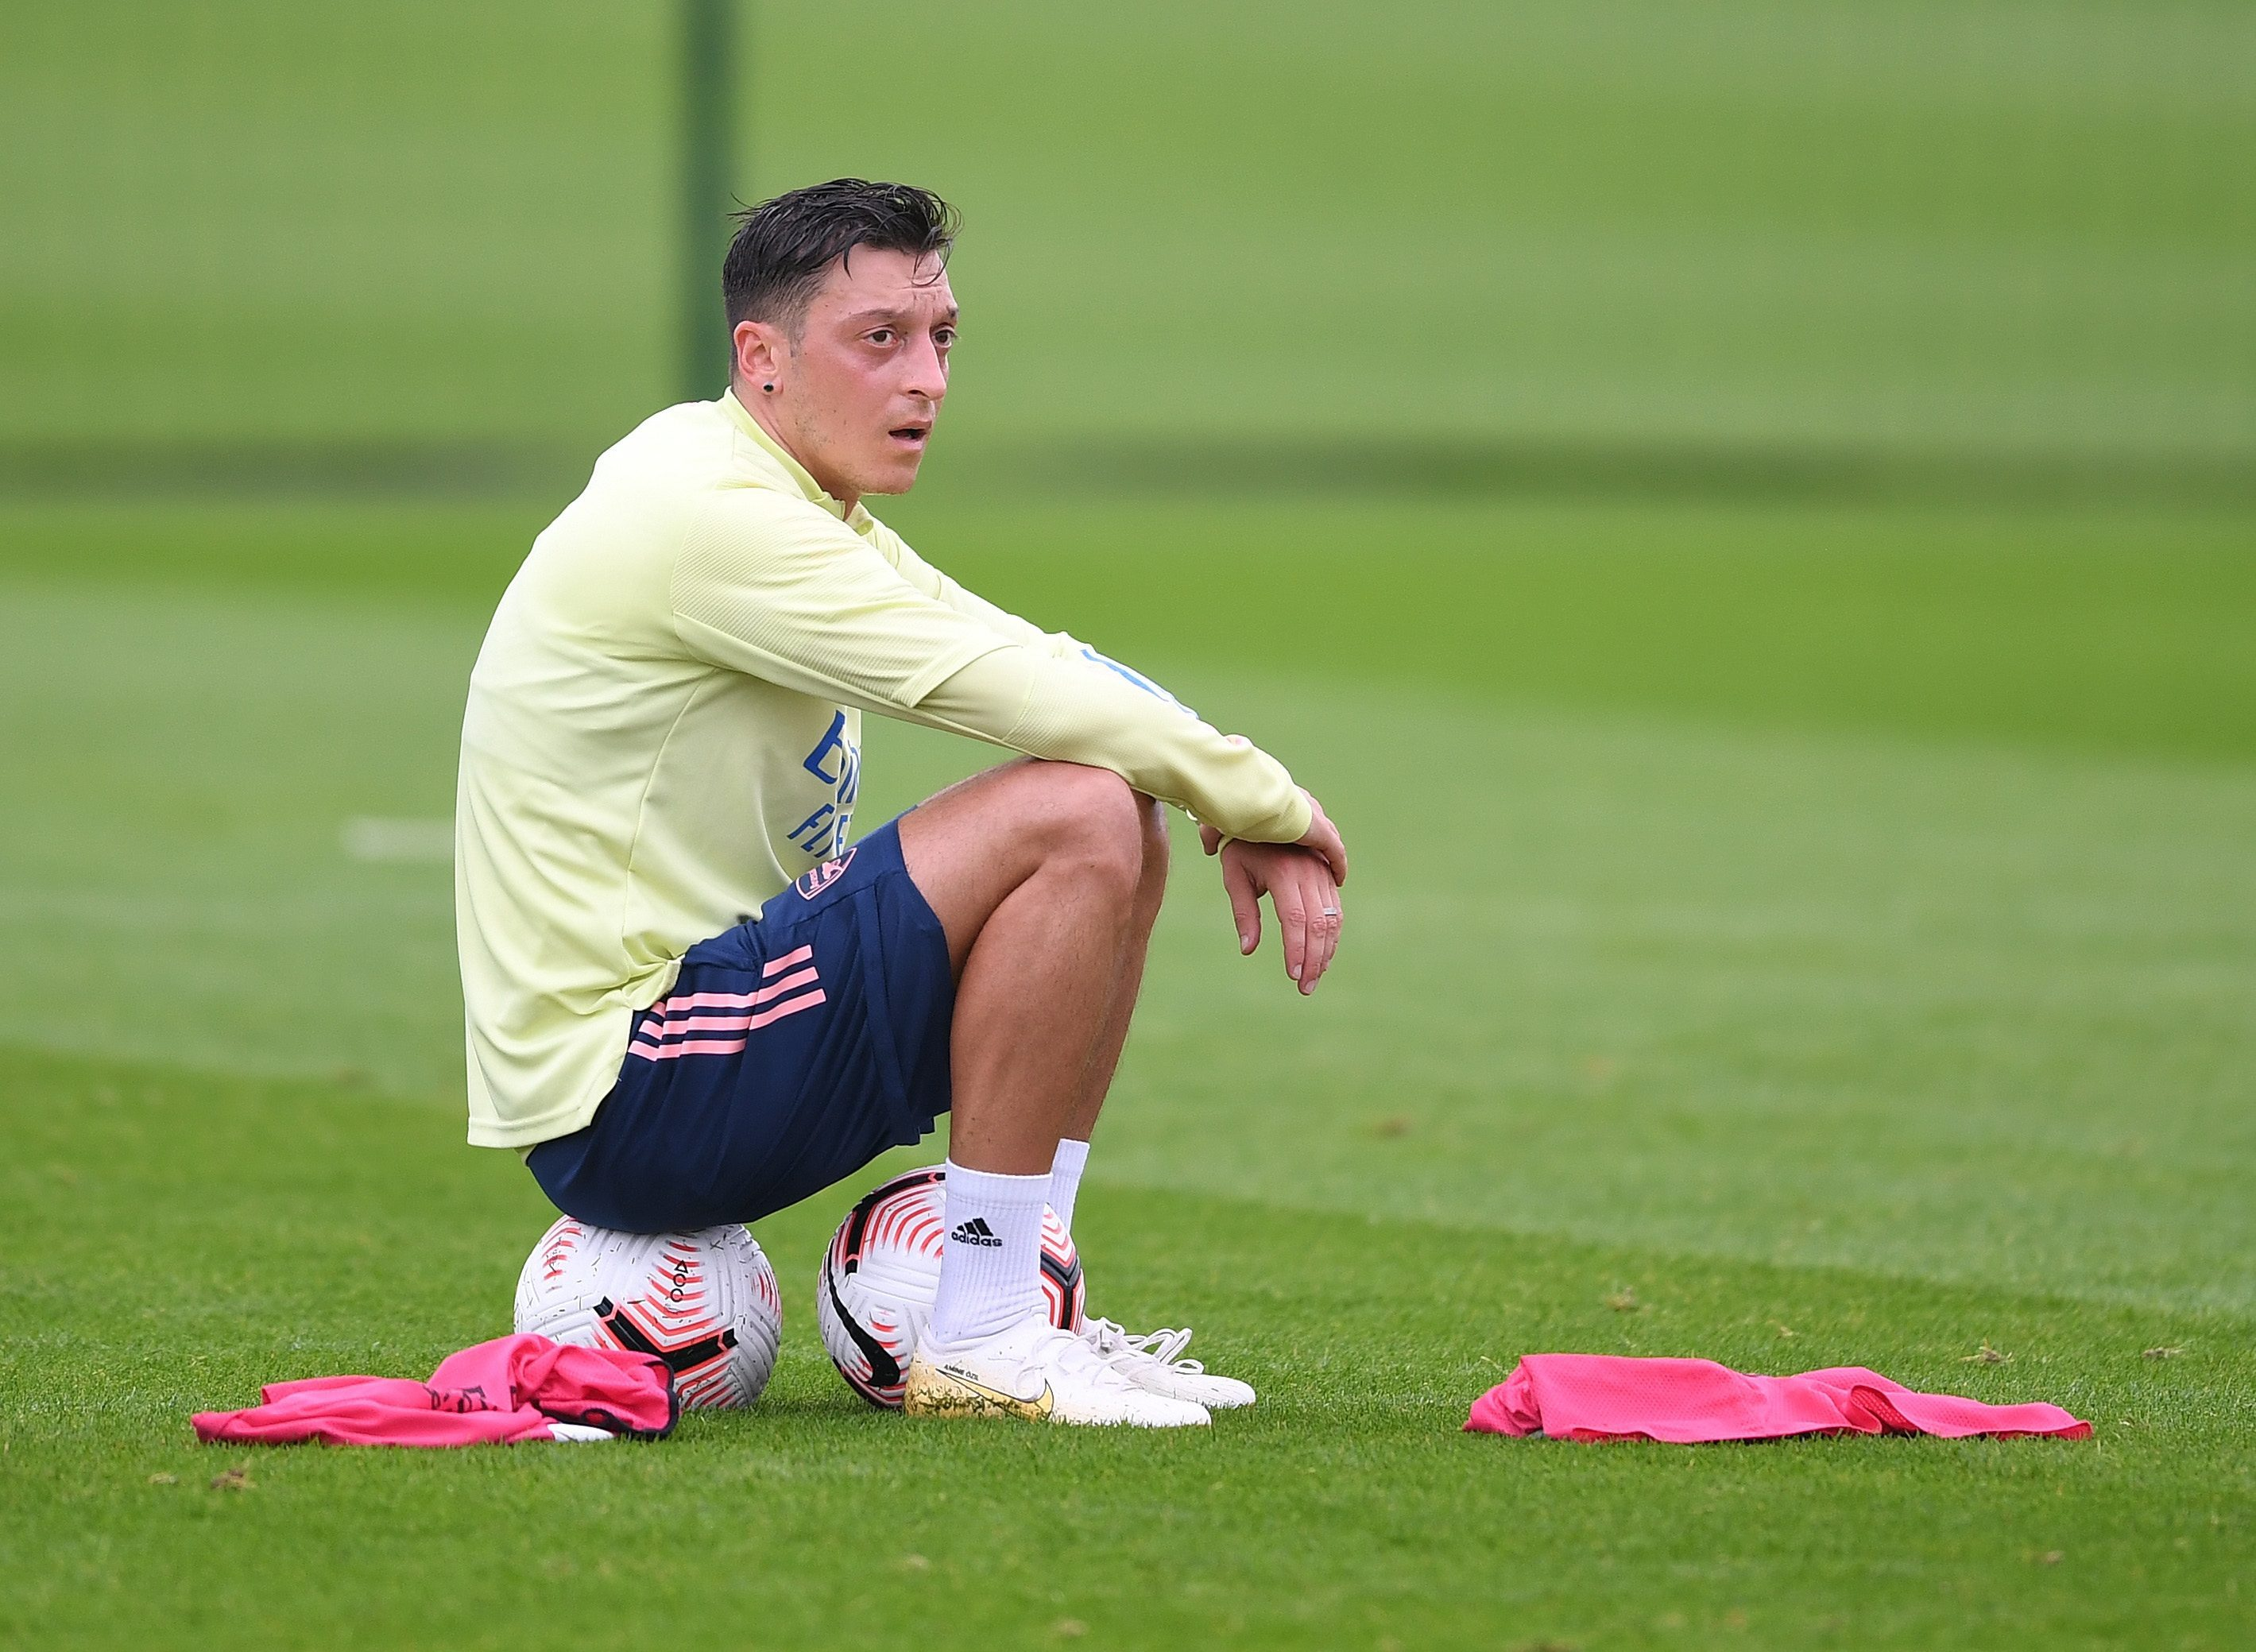 Ozil also dropped in form after being gifted a hefty contract and was shipped out to Fenerbahce in January